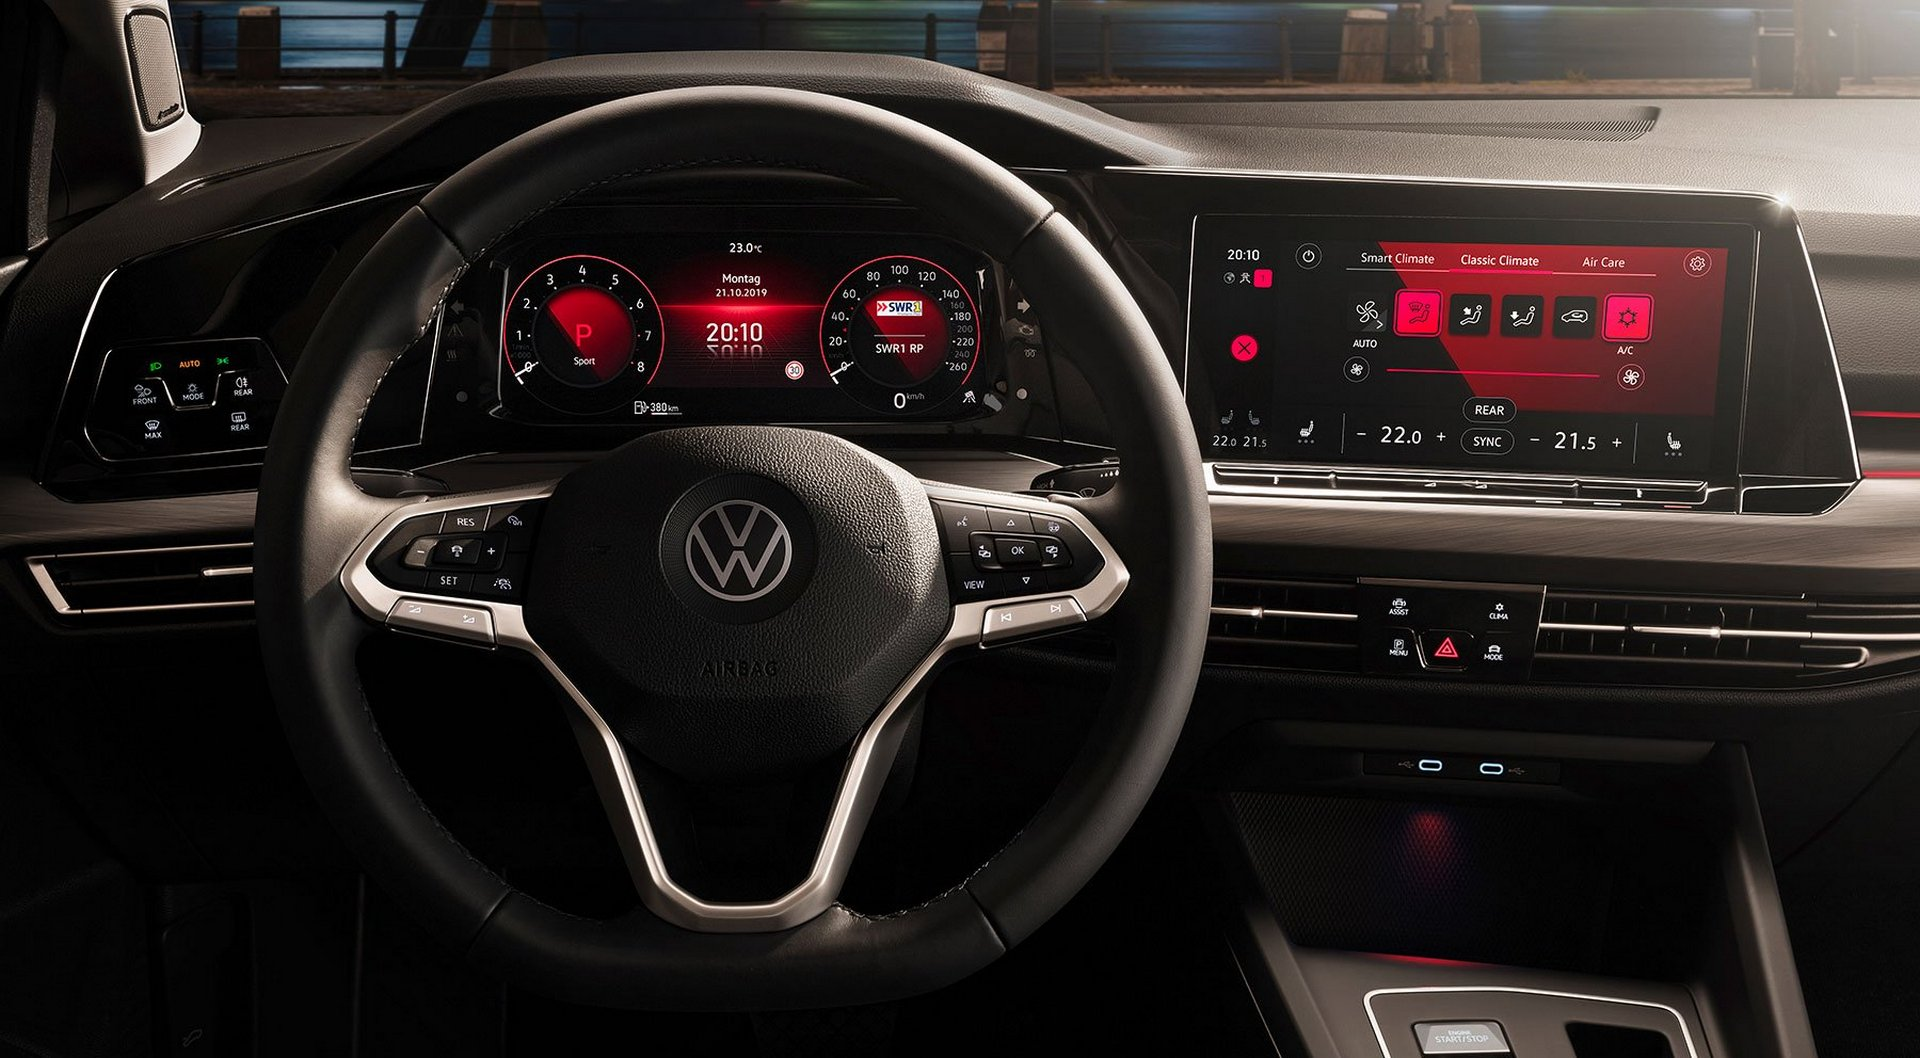 vw-mk8-golf-interior-dash